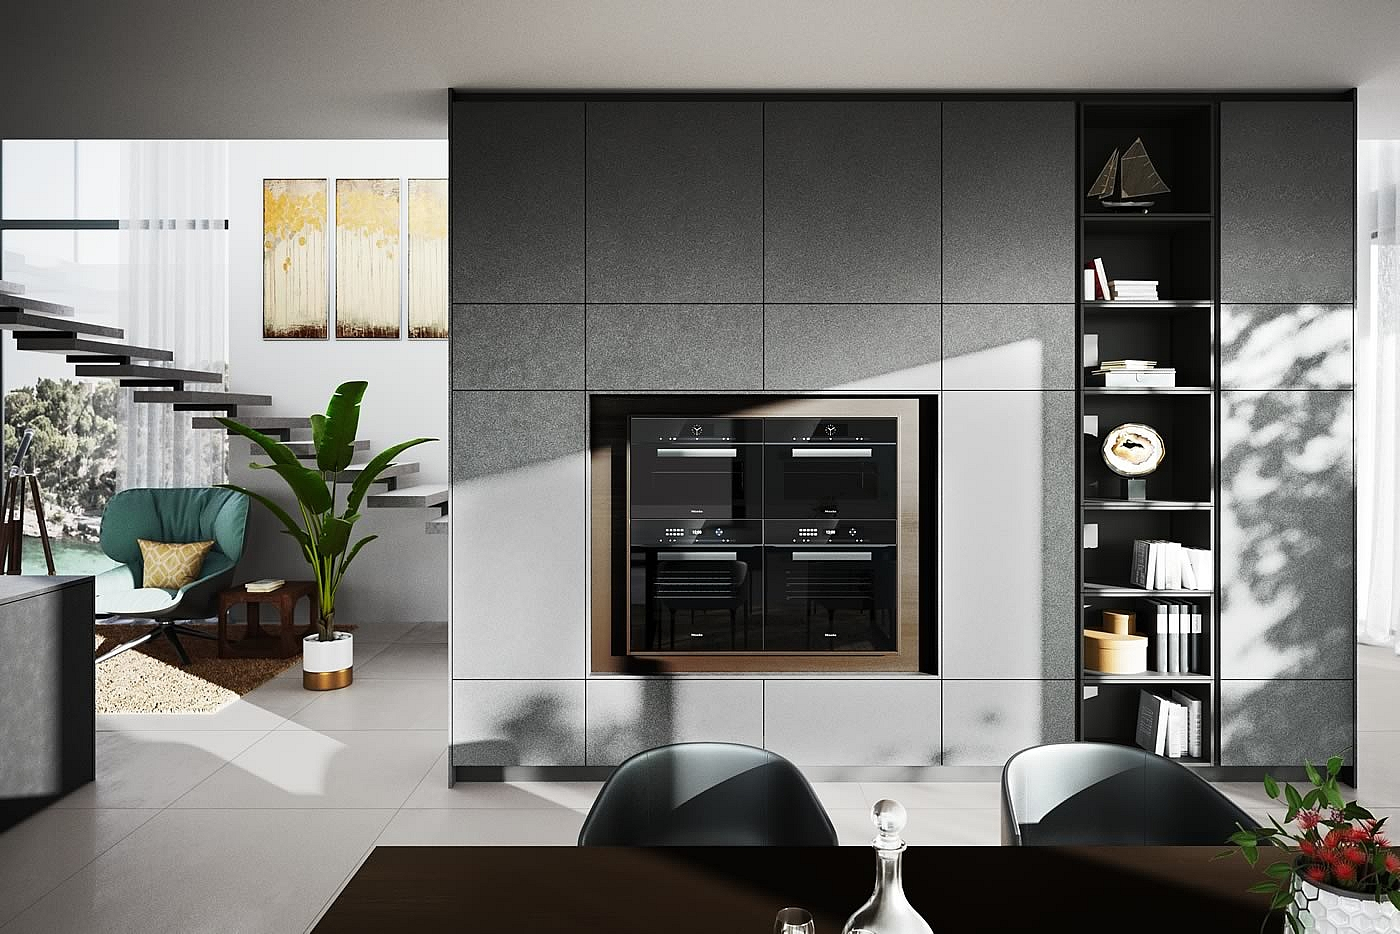 Kitchen 2 Luxury Kitchen Designs at Kitchen Evolution Sloane Square Chelsea Knightsbridge Mayfair London call 020 7730 4850